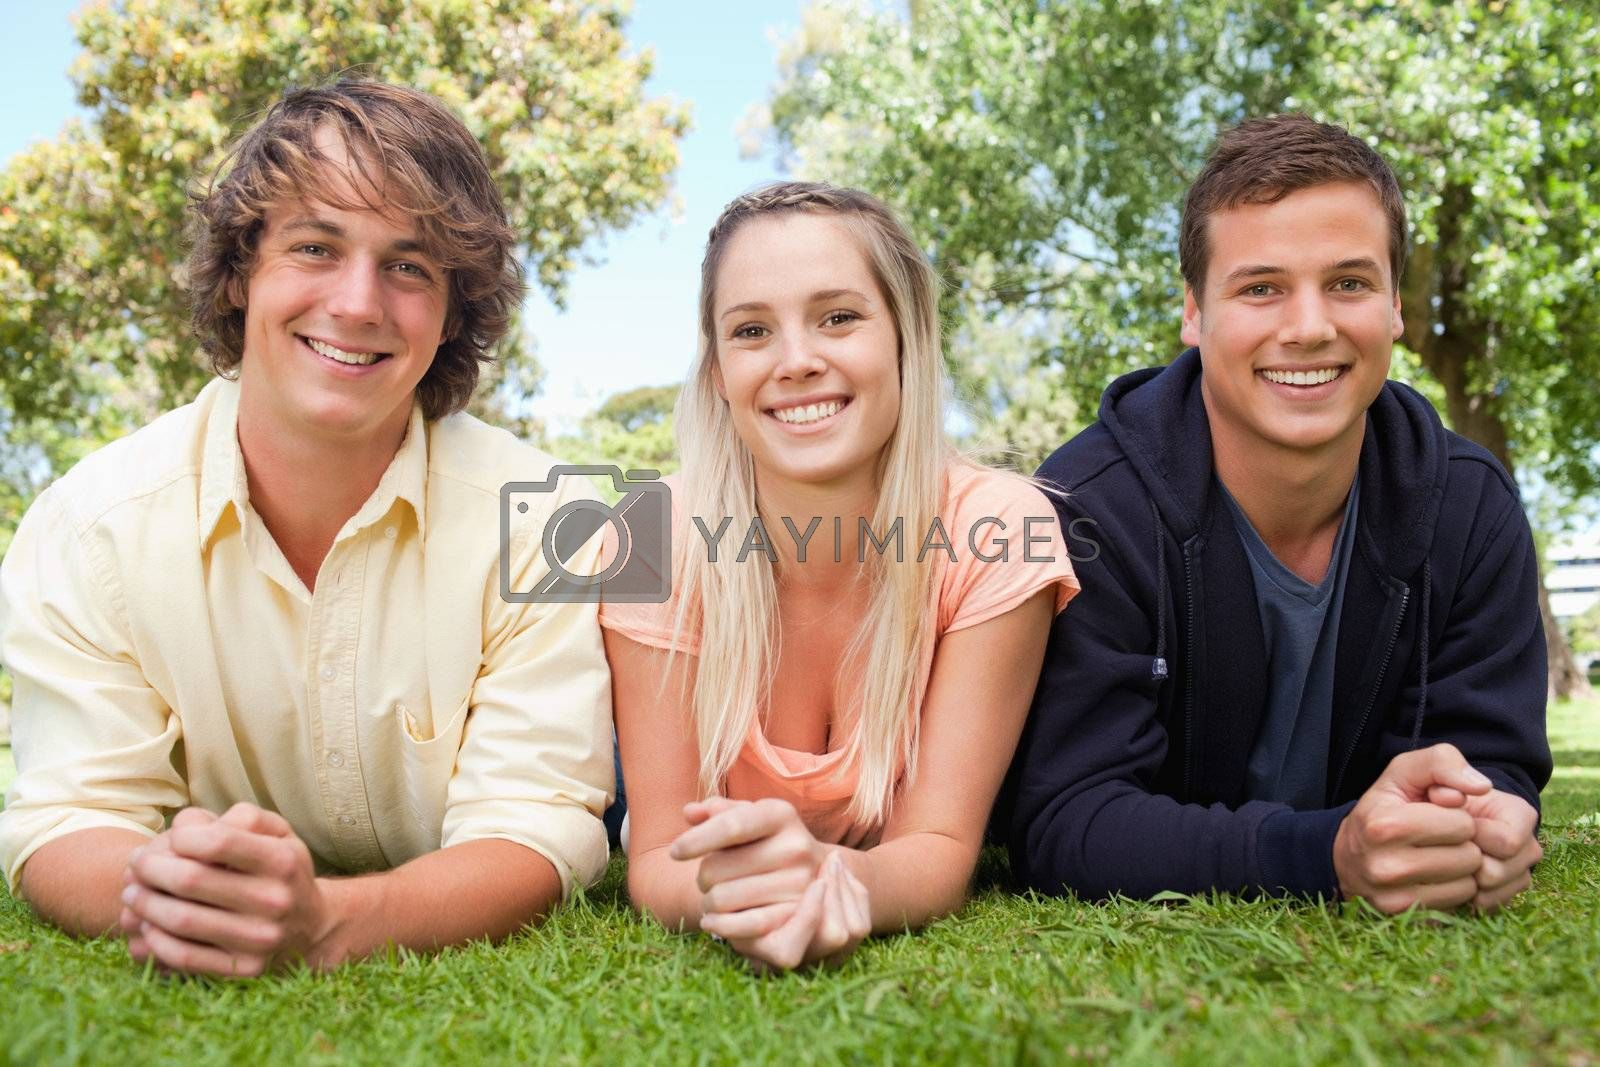 Portrait of three smiling students in a park lying on their tummy